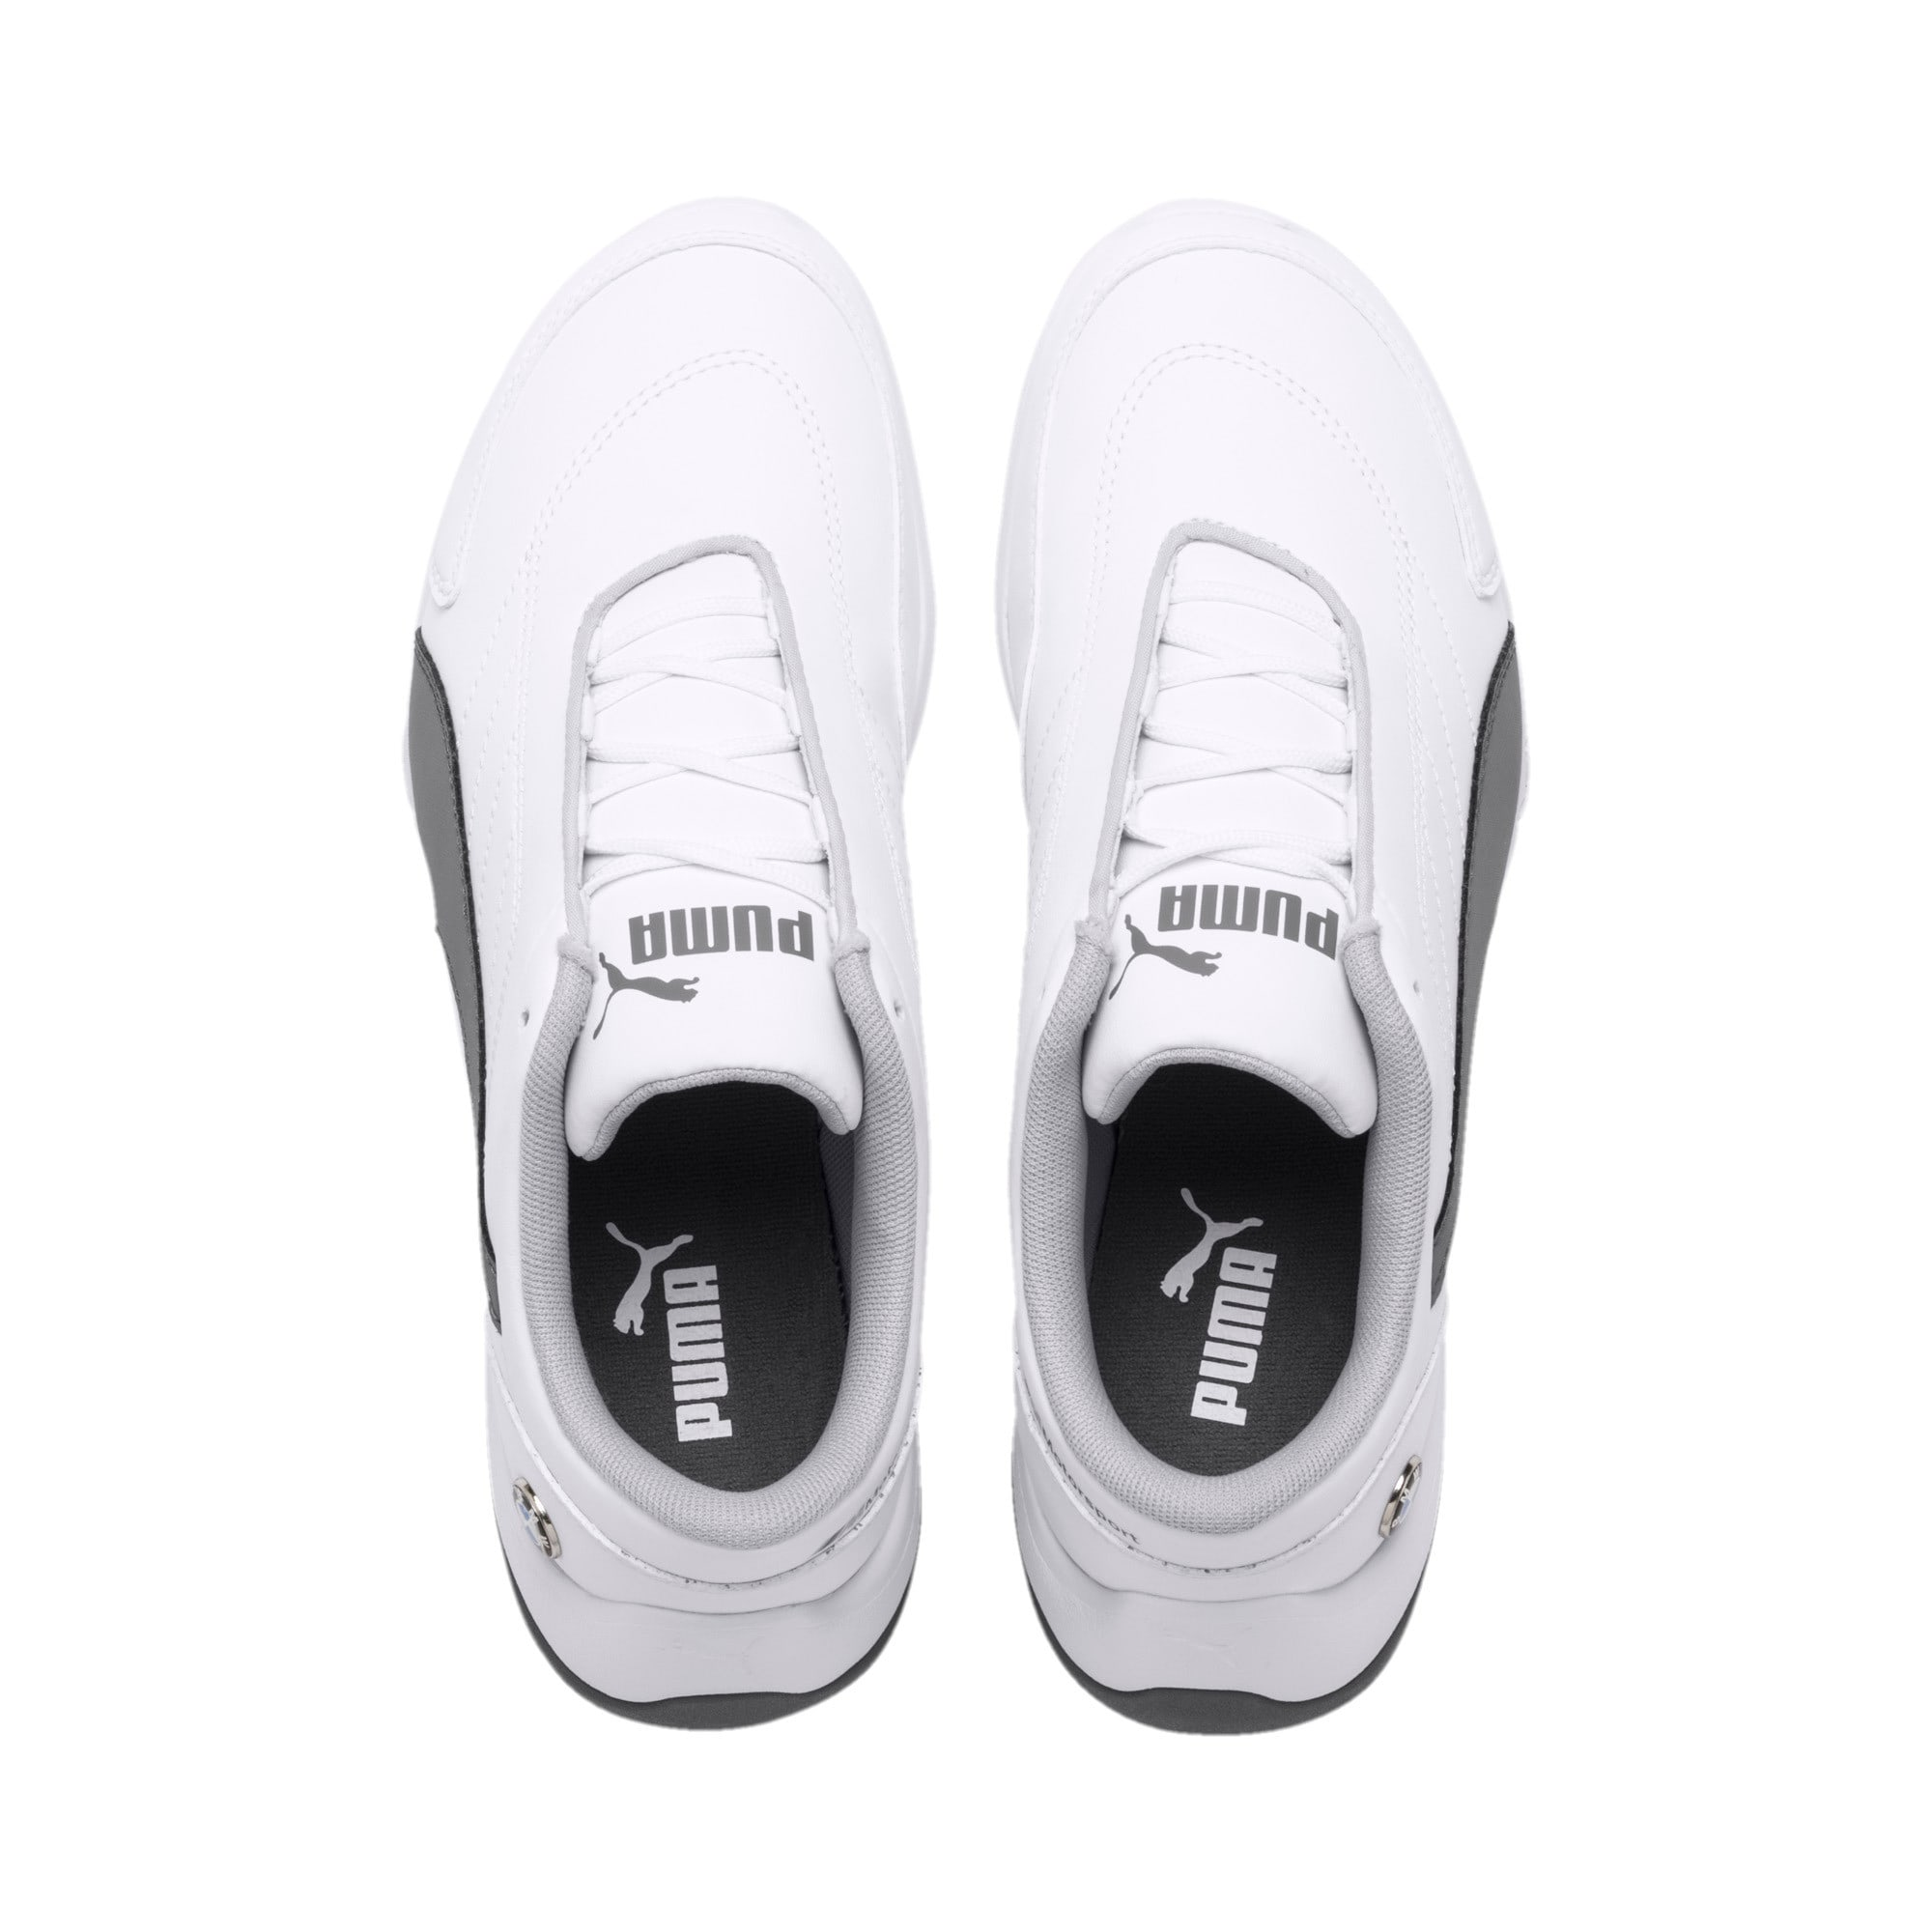 BMW MMS Kart Cat III Shoes JR, Puma White-Smoked Pearl, large